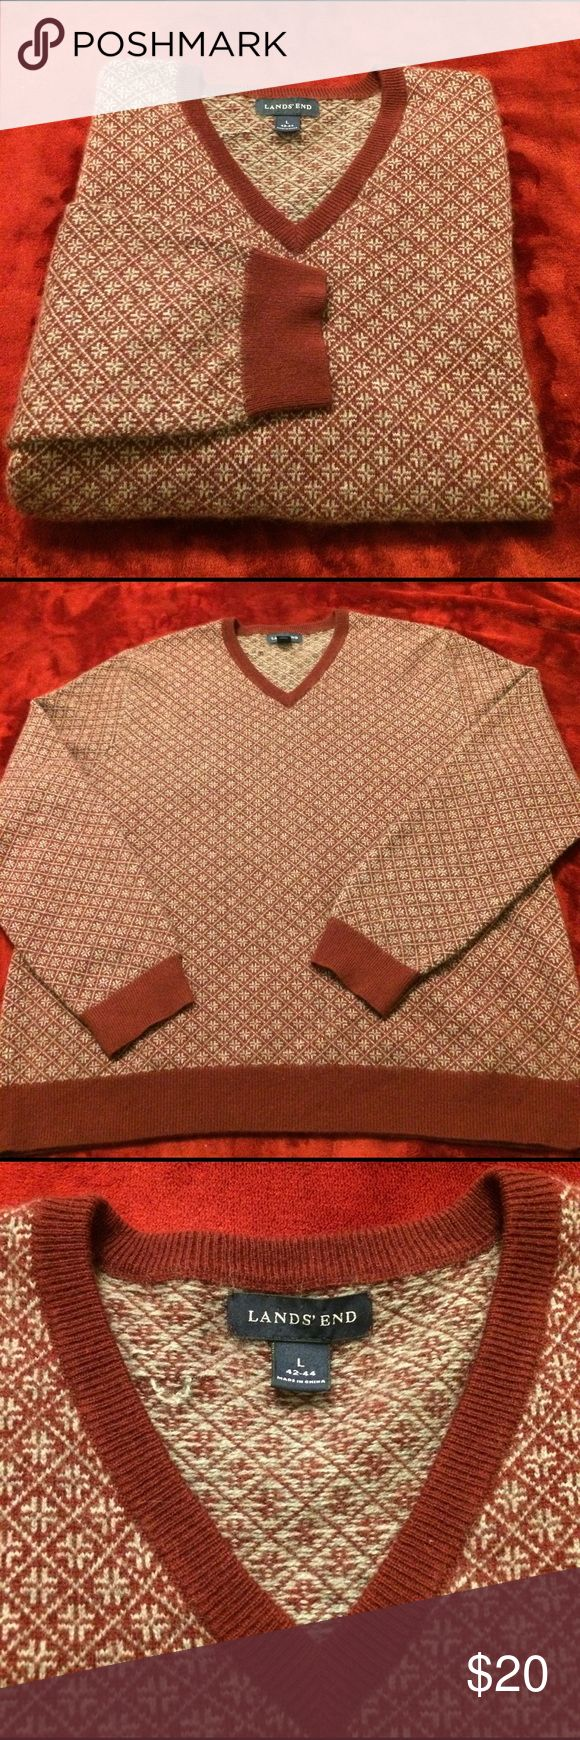 Lands end Large size 42-44 men's Cashmere Sweater Like new condition red grey color. Very soft Cashmere 100% Lands' End Sweaters V-Neck